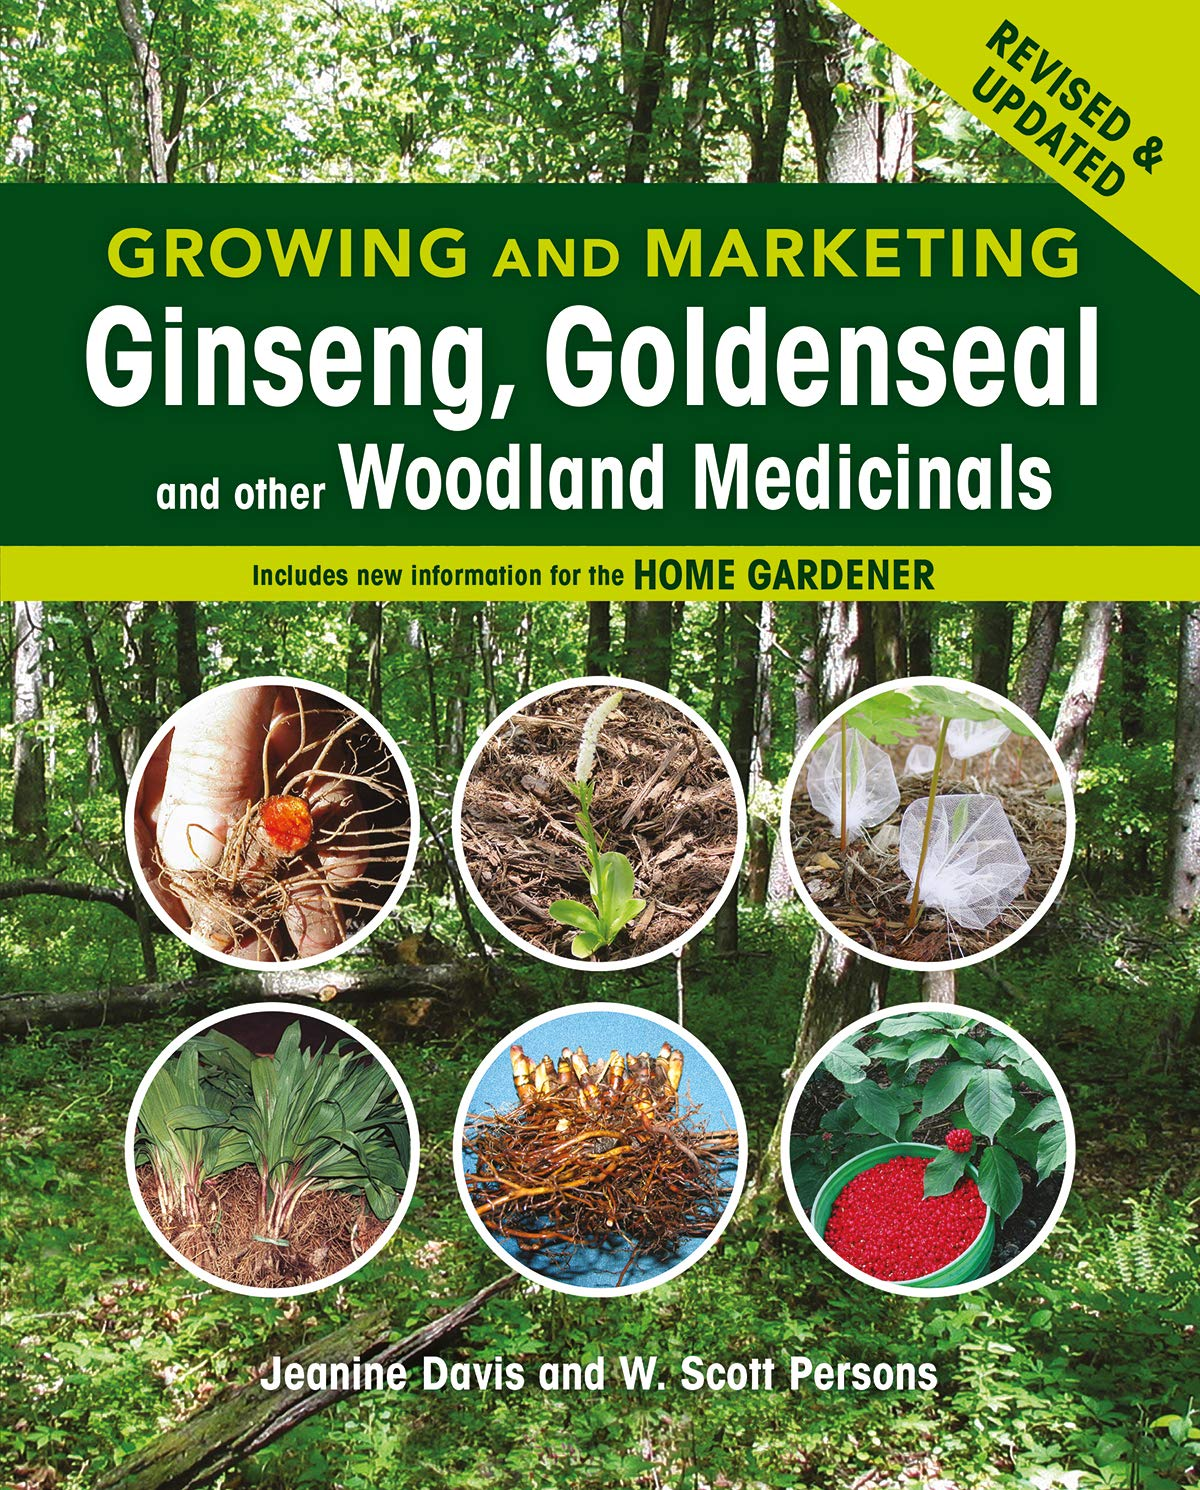 Growing and Marketing Ginseng, Goldenseal and other Woodland Medicinals: 2nd Edition by New Society Publishers